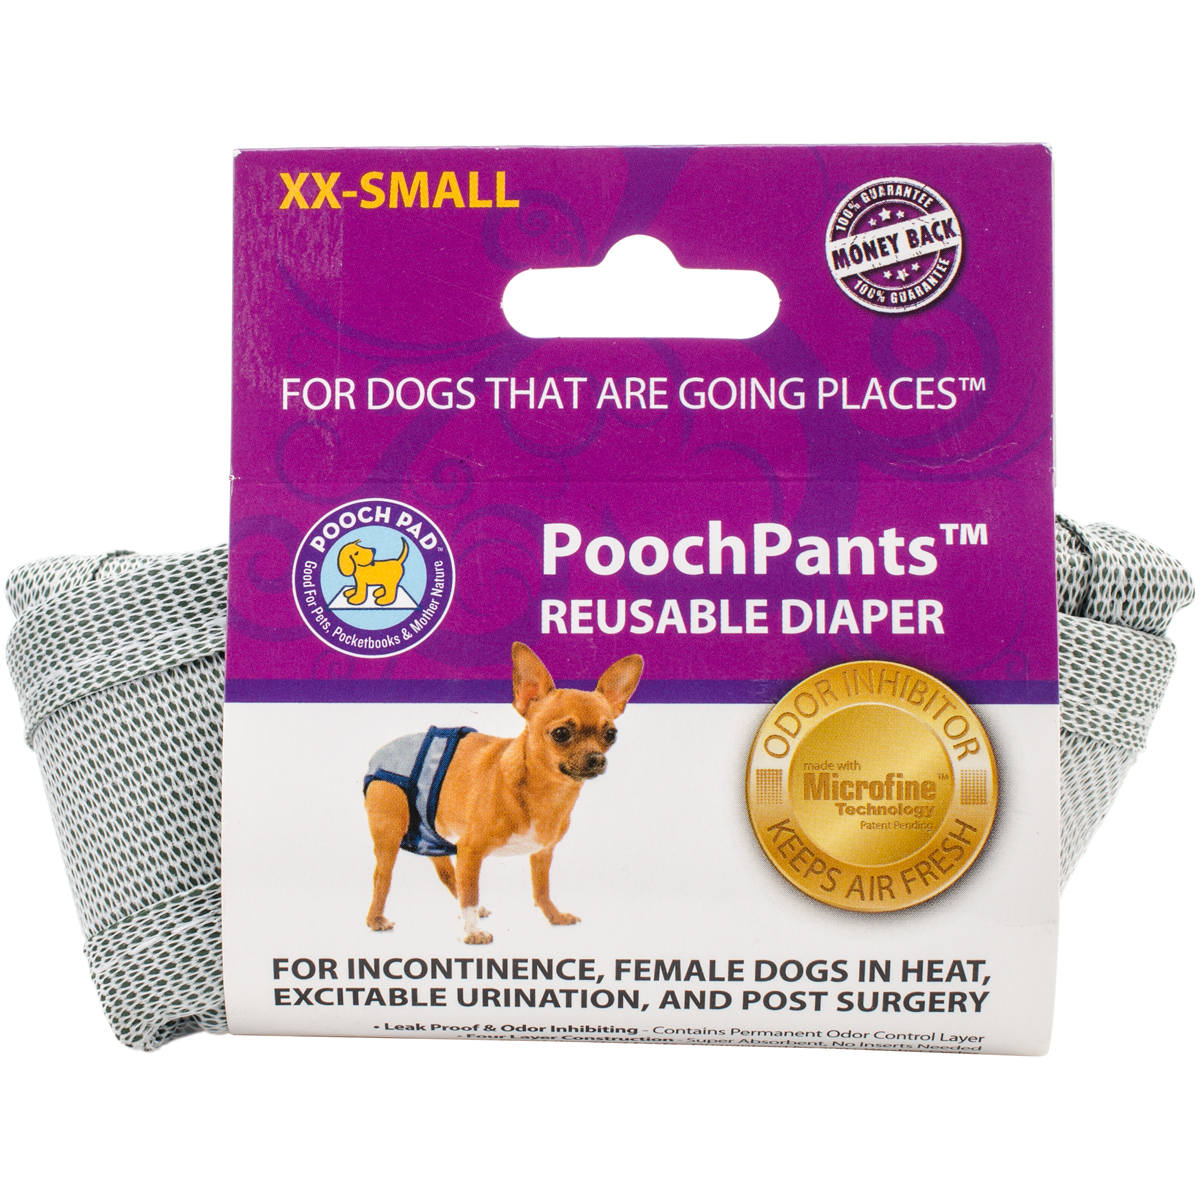 PoochPants Reusable Dog Diaper, XX-Small, Up To 4 lbs